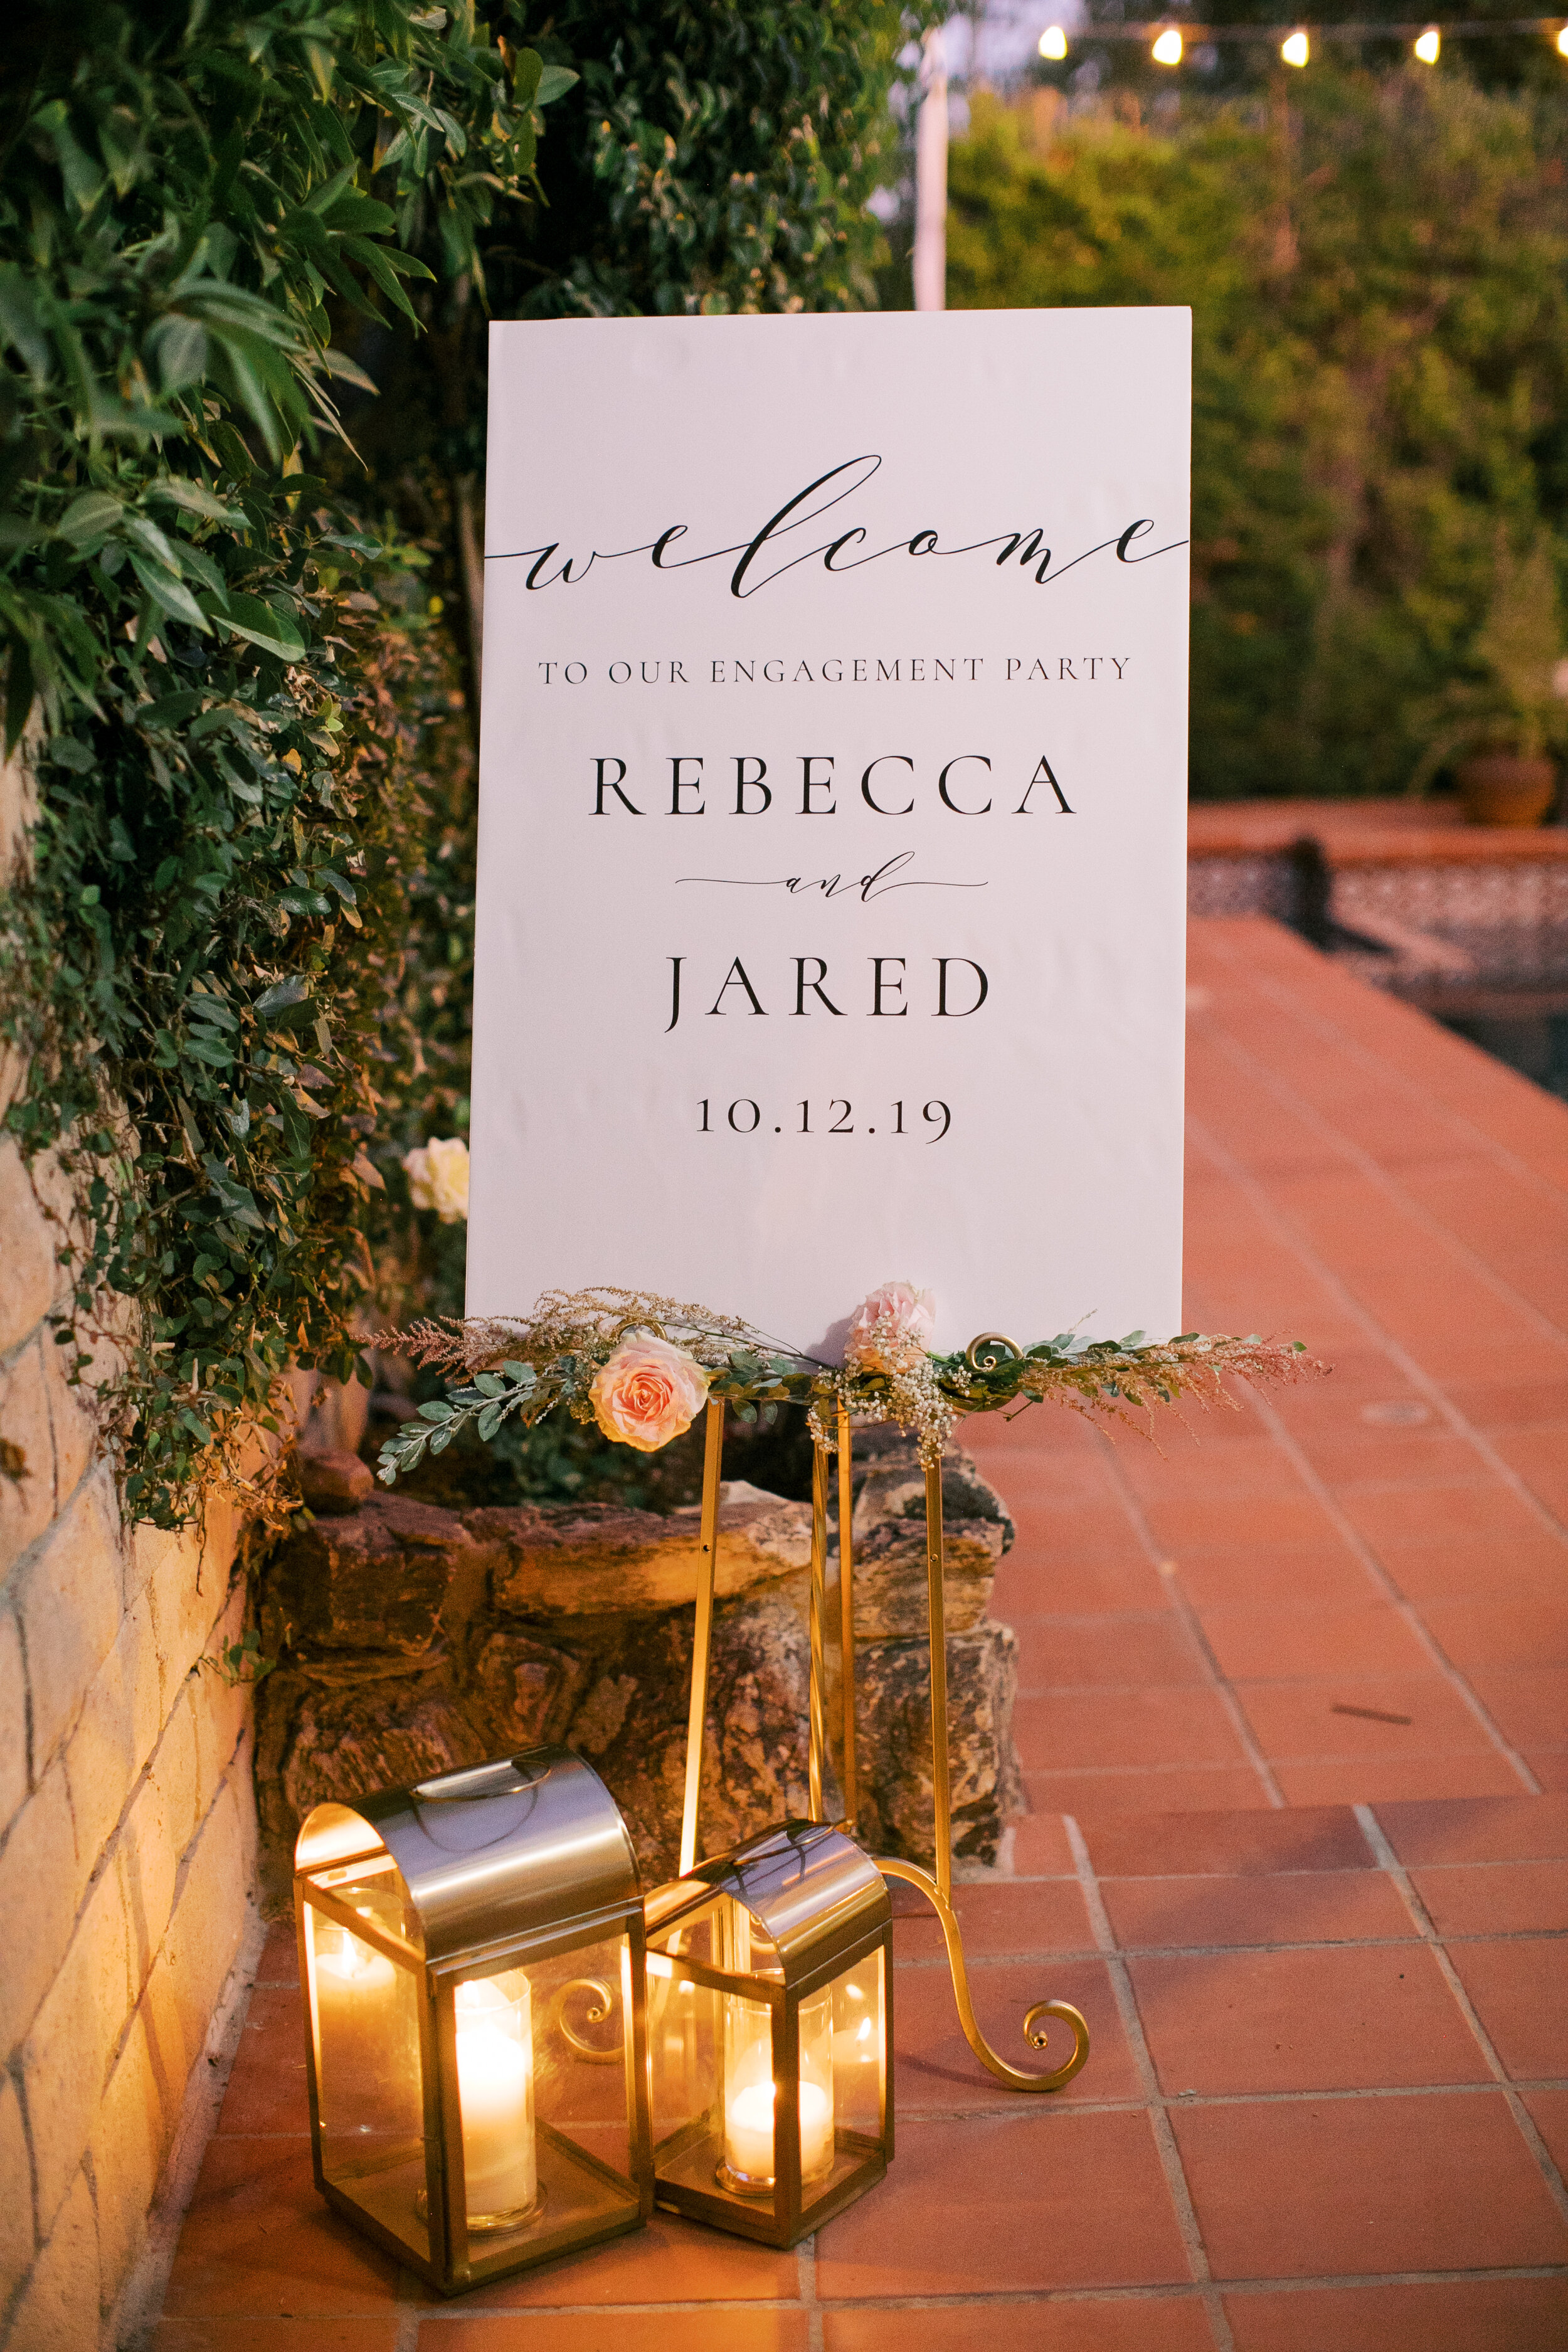 Rebecca-Jared-Engagement-Party-105.jpg